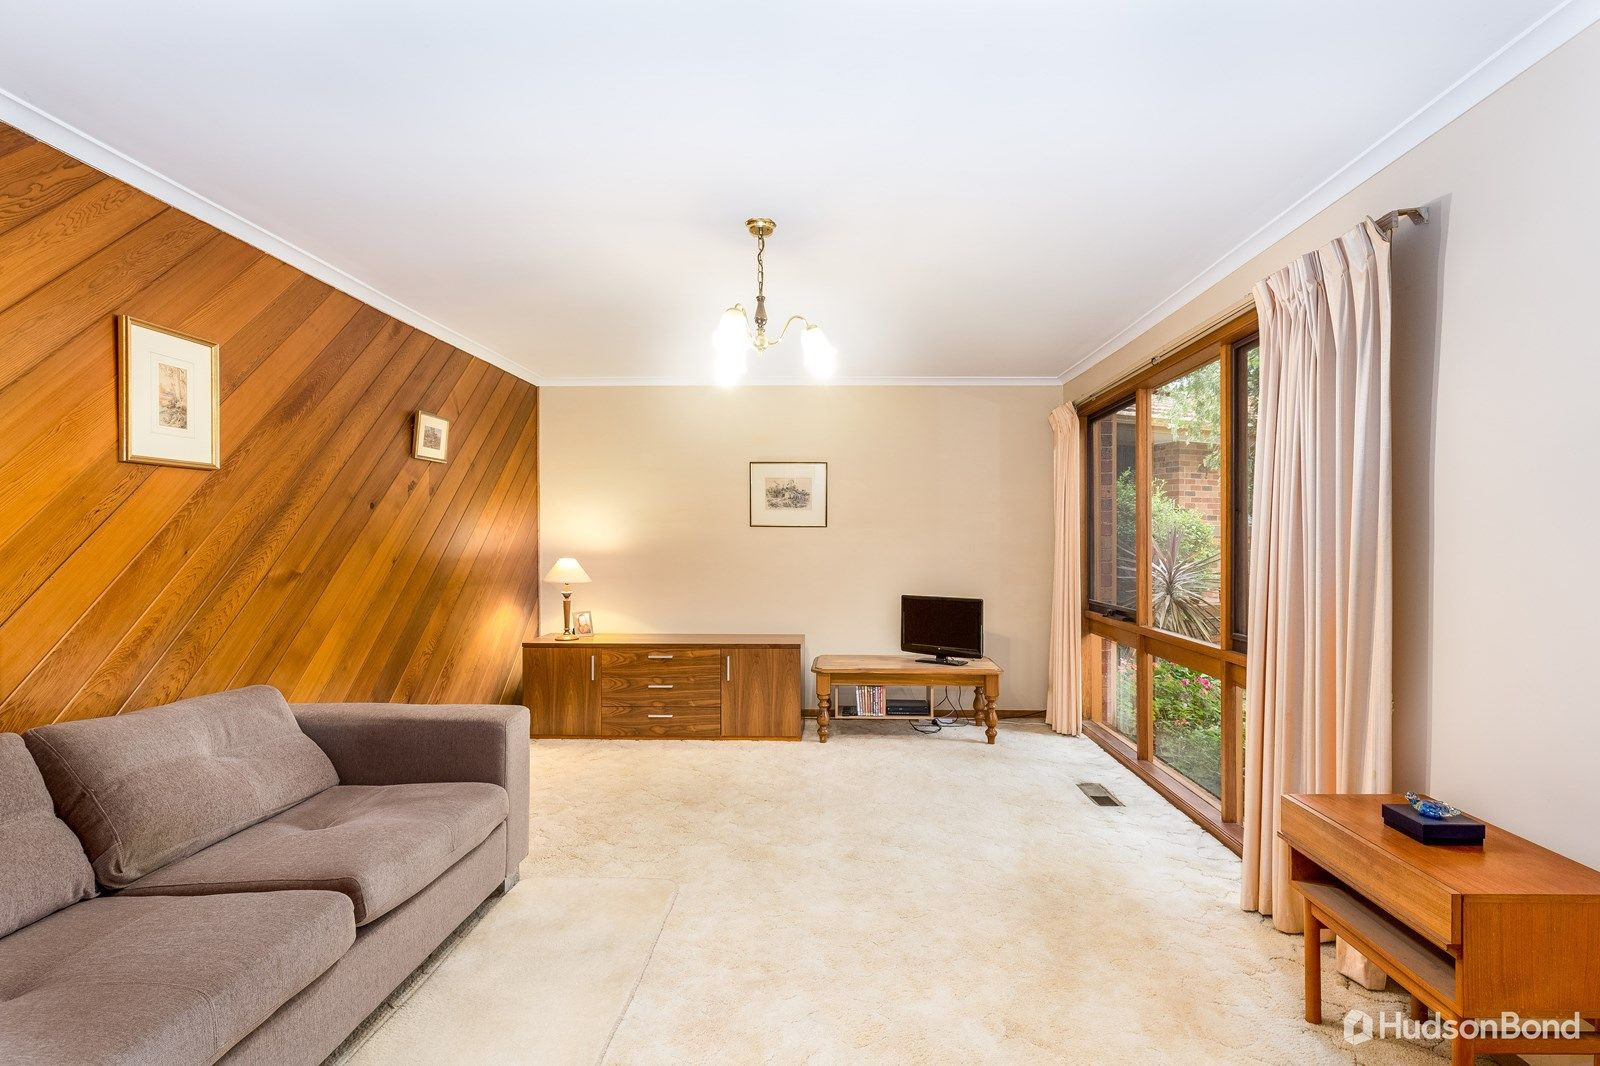 20/224 Williamsons Road, Doncaster VIC 3108, Image 2